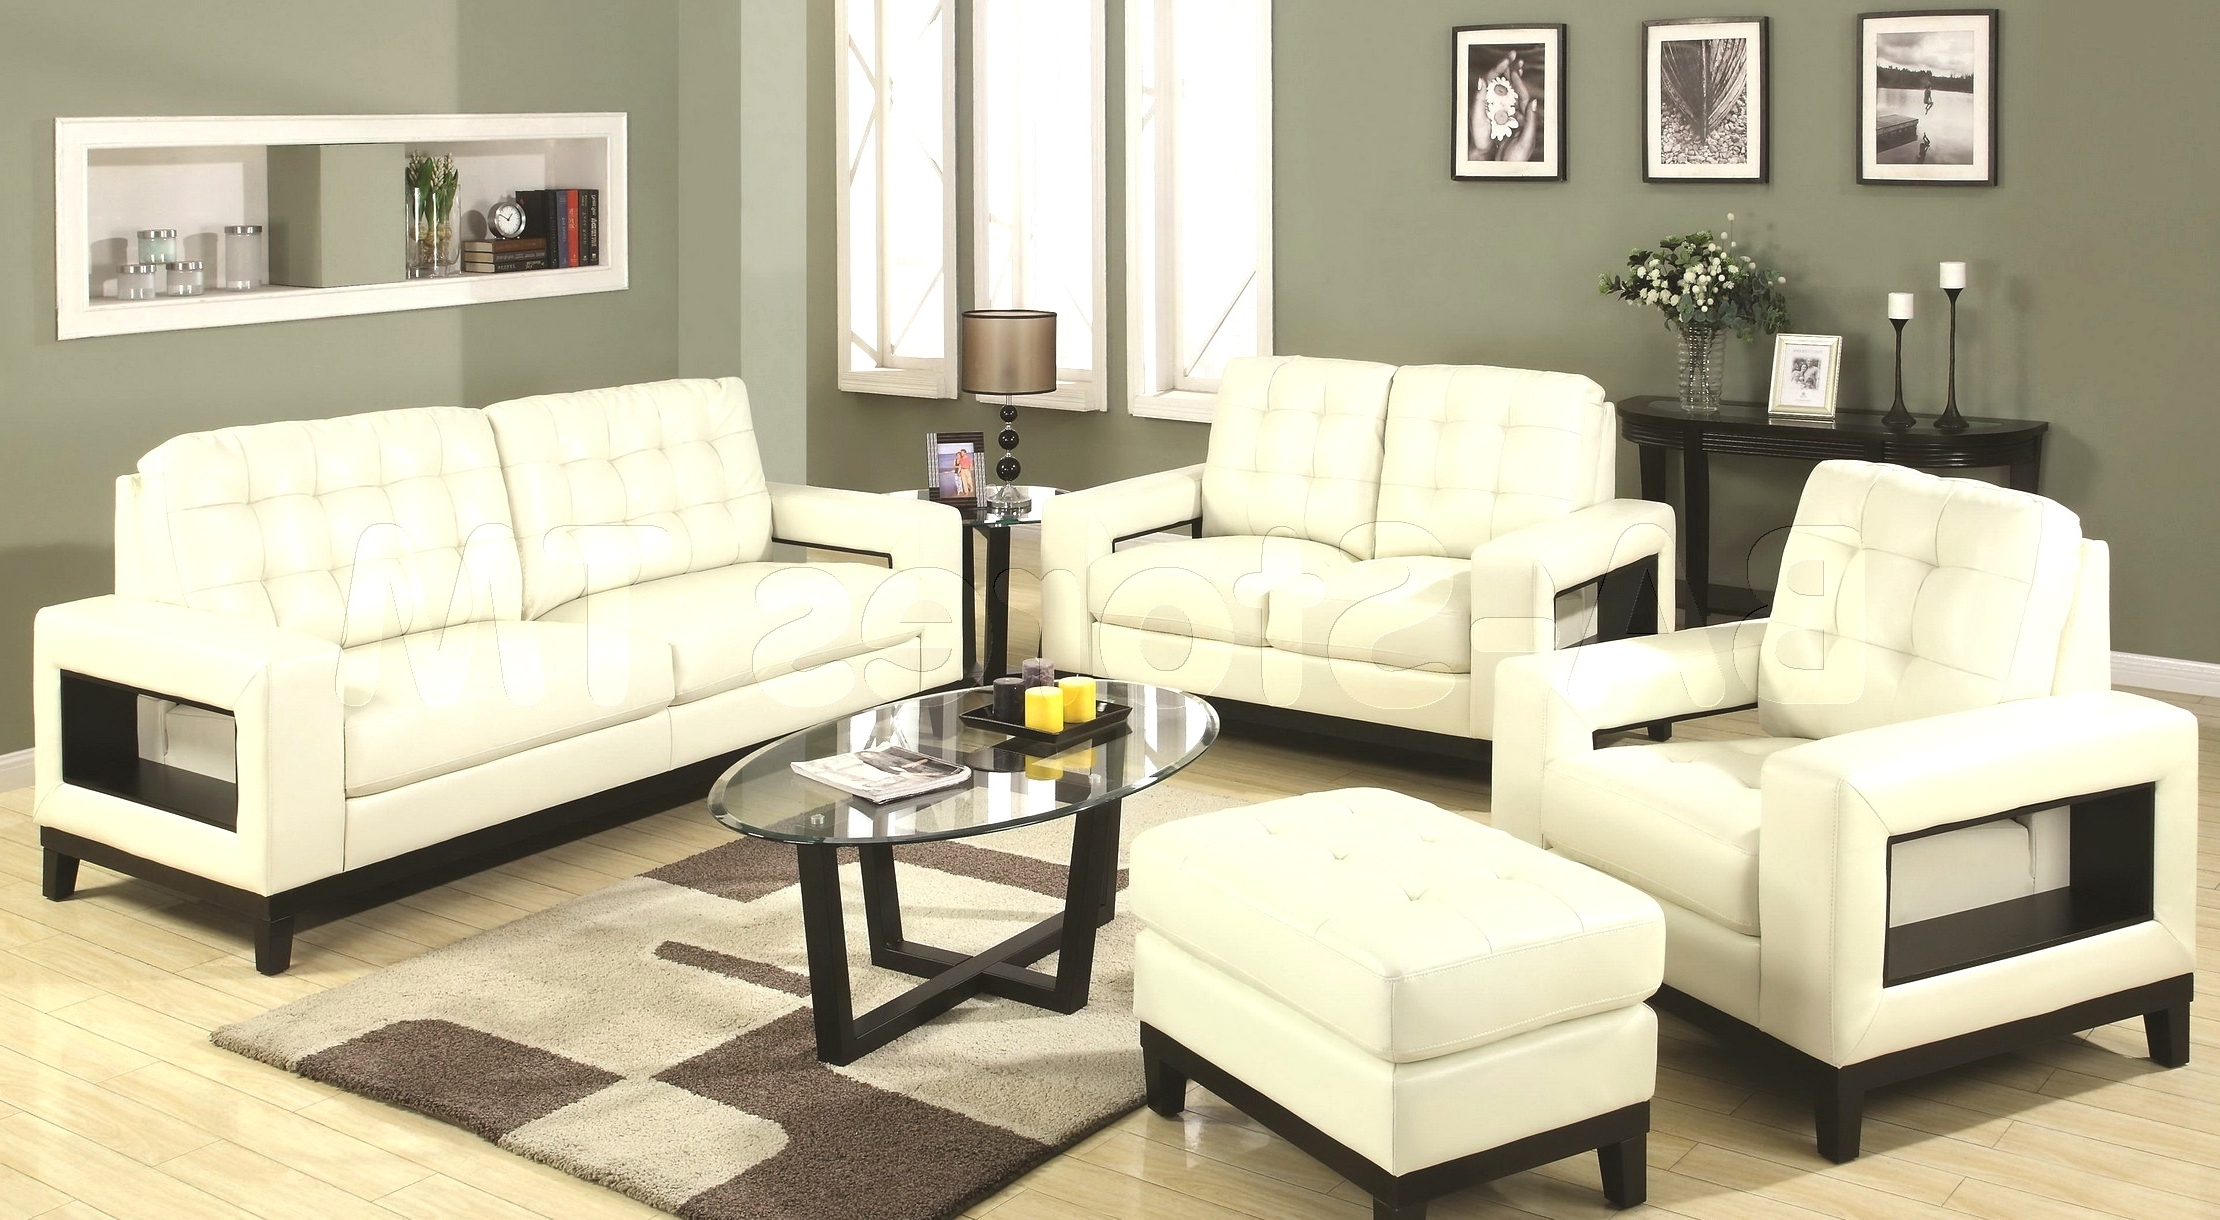 Famous Elegant Sofas Sets 79 Sofas And Couches Ideas With Sofas Sets Regarding Elegant Sofas And Chairs (View 14 of 20)